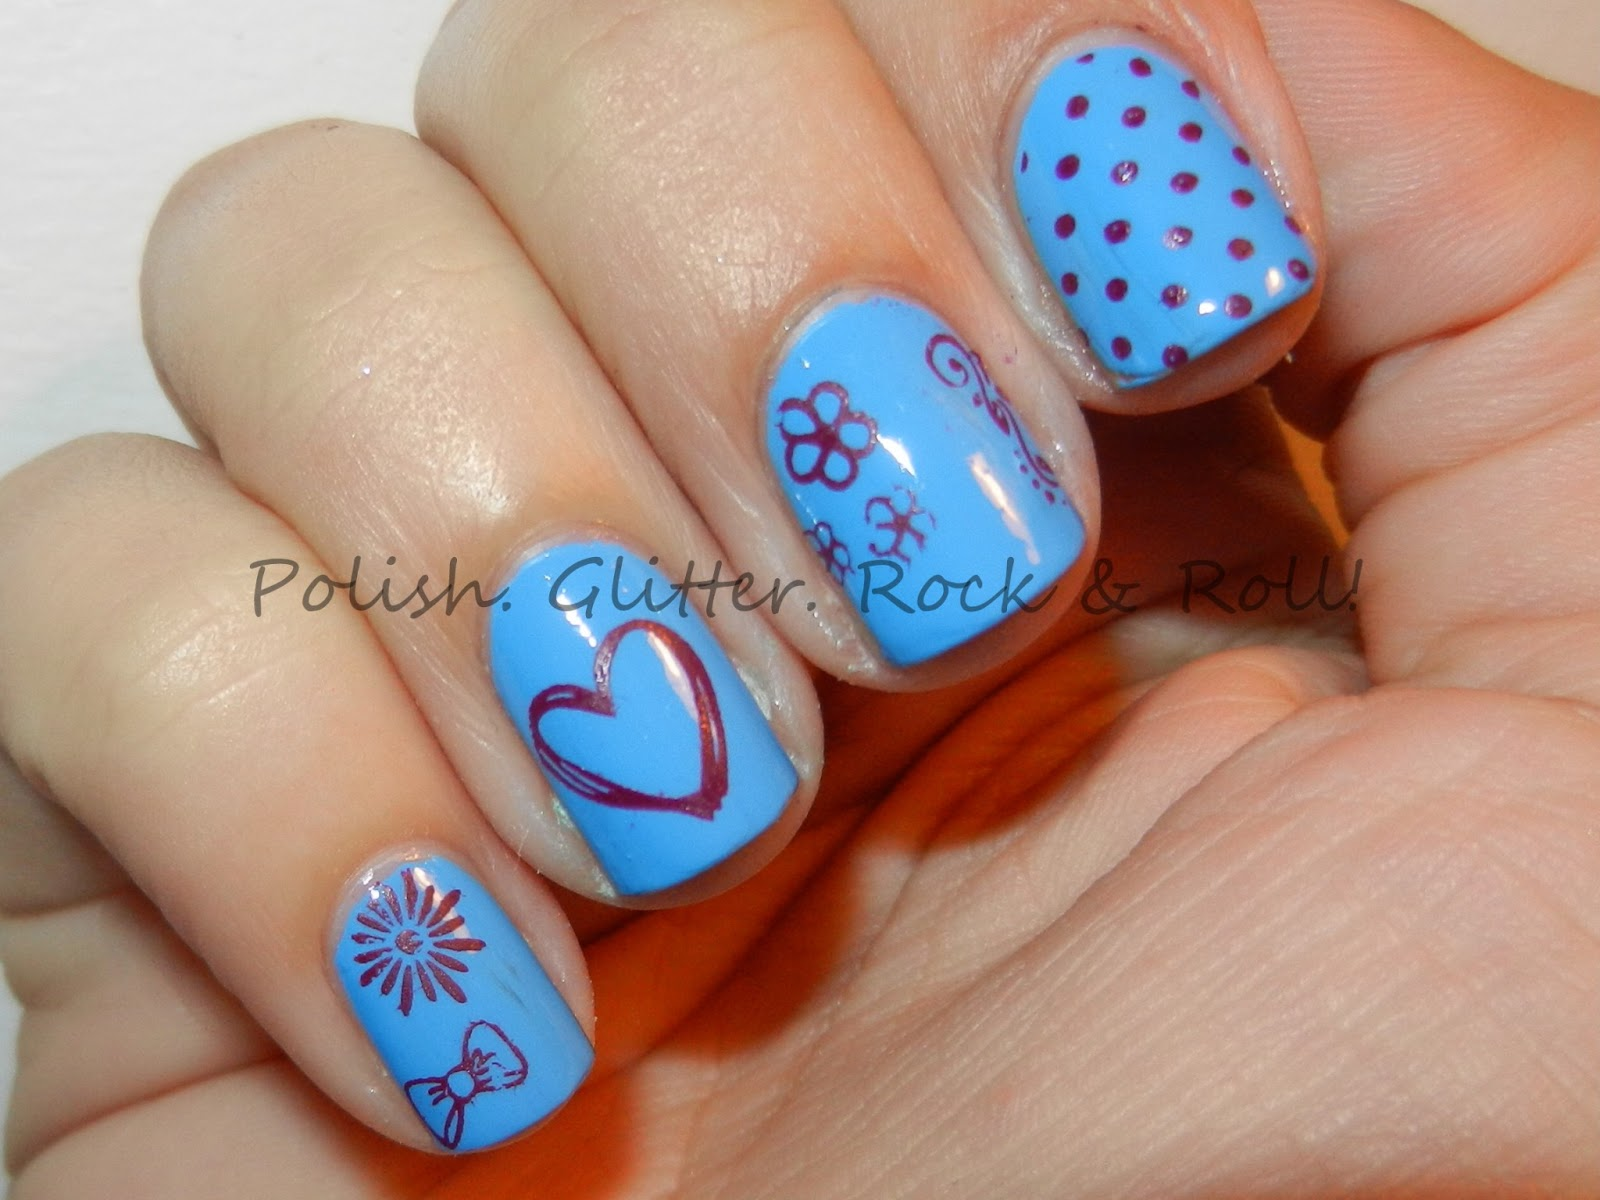 Polish glitter rock roll product review essence nail art product review essence nail art stampy set review prinsesfo Image collections